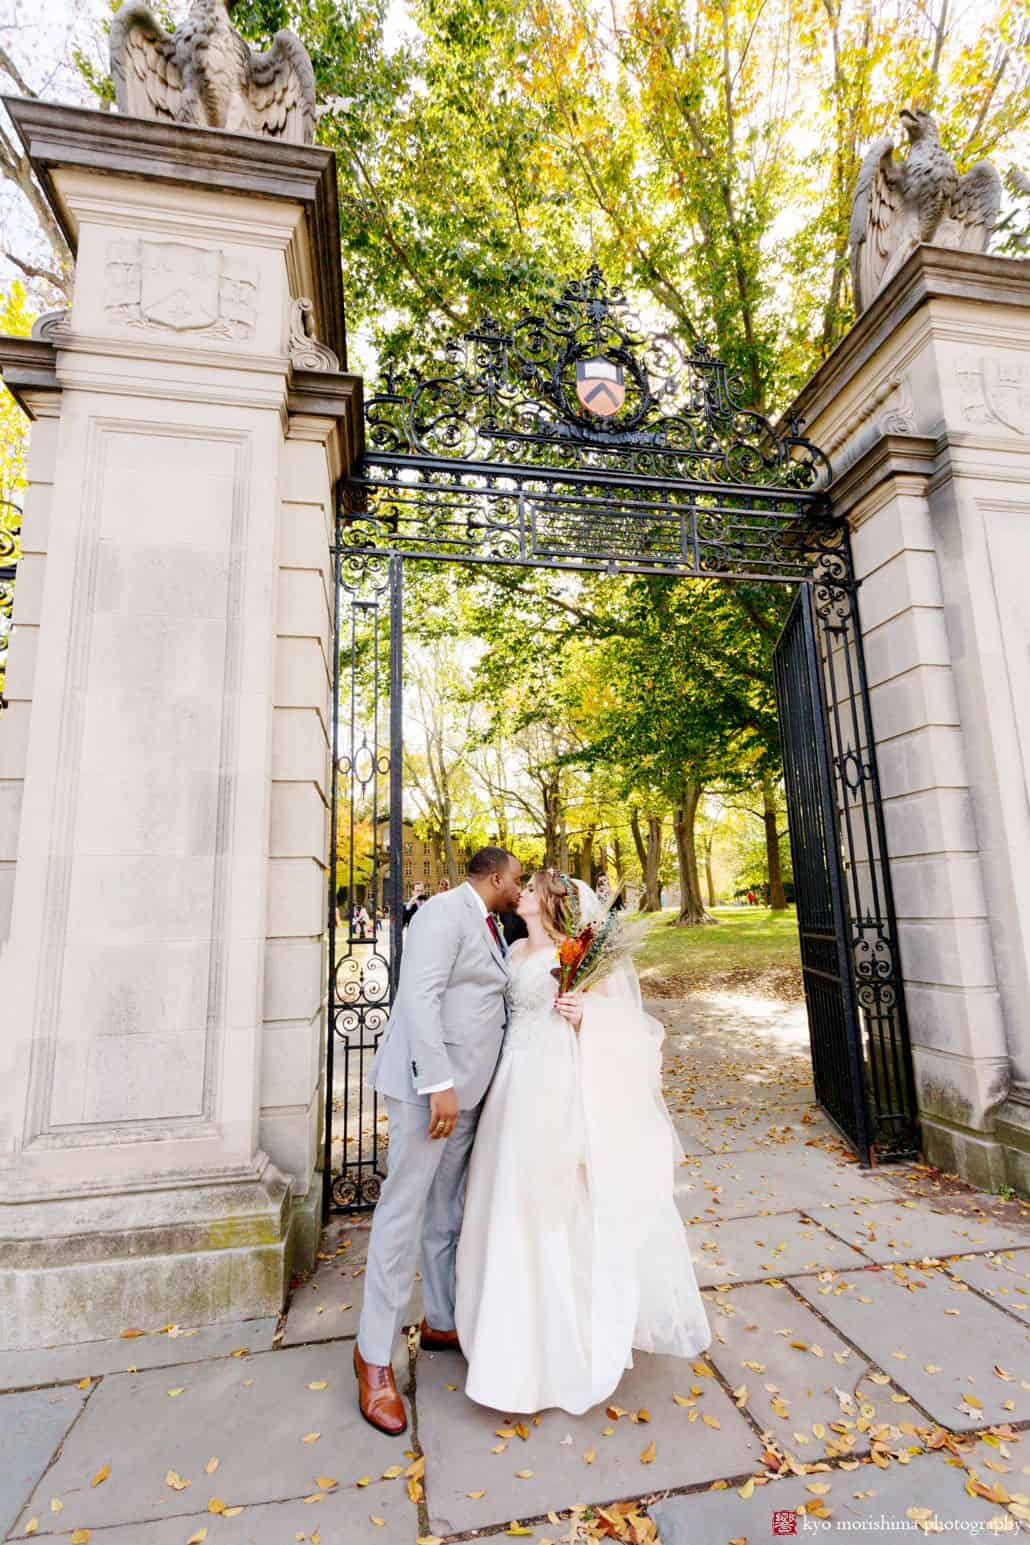 First wedding day kiss in front of Nassau Hall gates at Princeton University; fall wedding